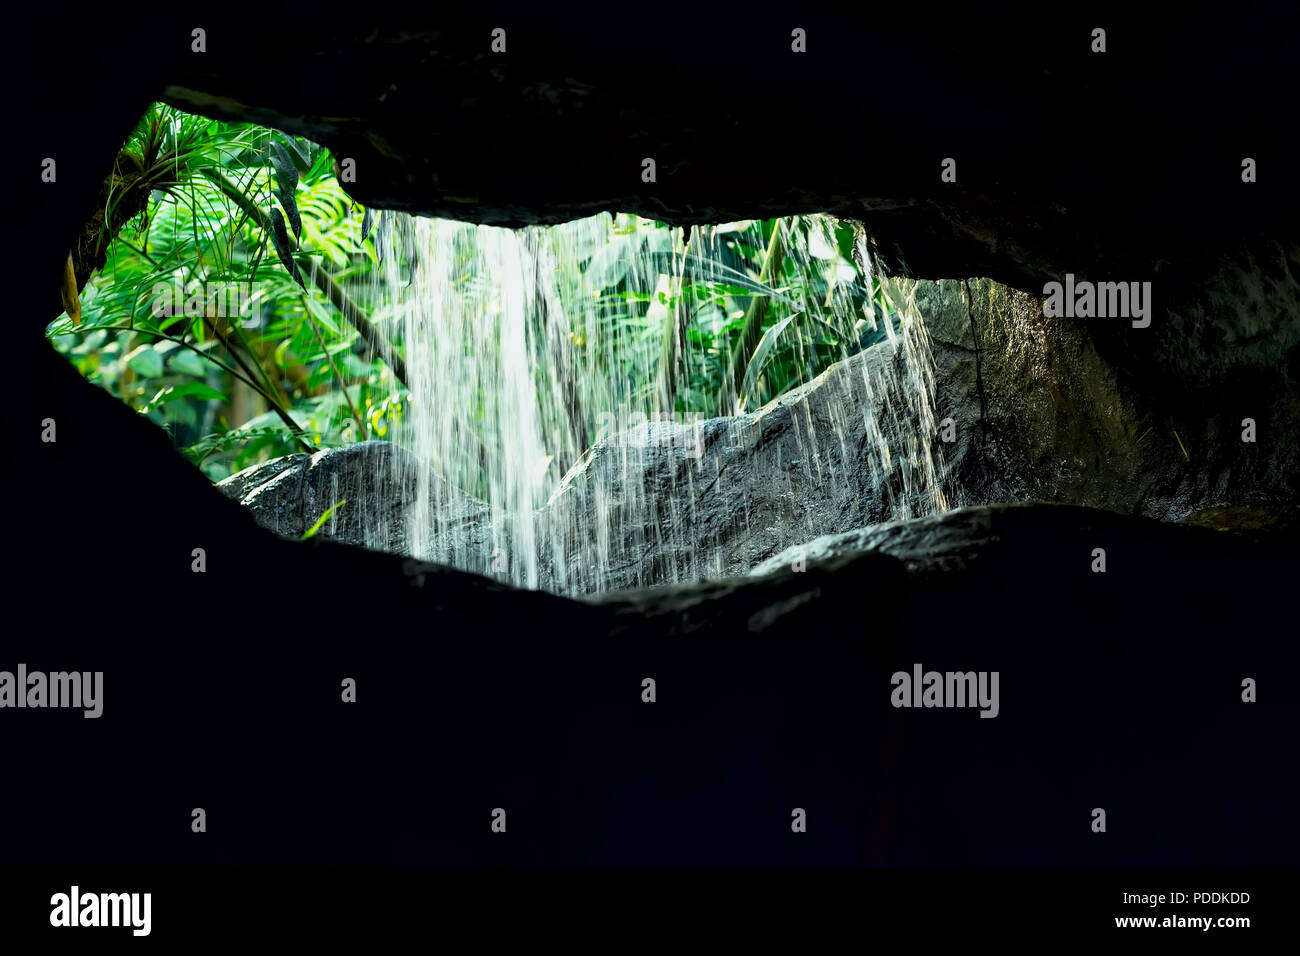 View through grotto on exotic tropical plants and waterfall. Dark background of stone and rocks - Stock Image